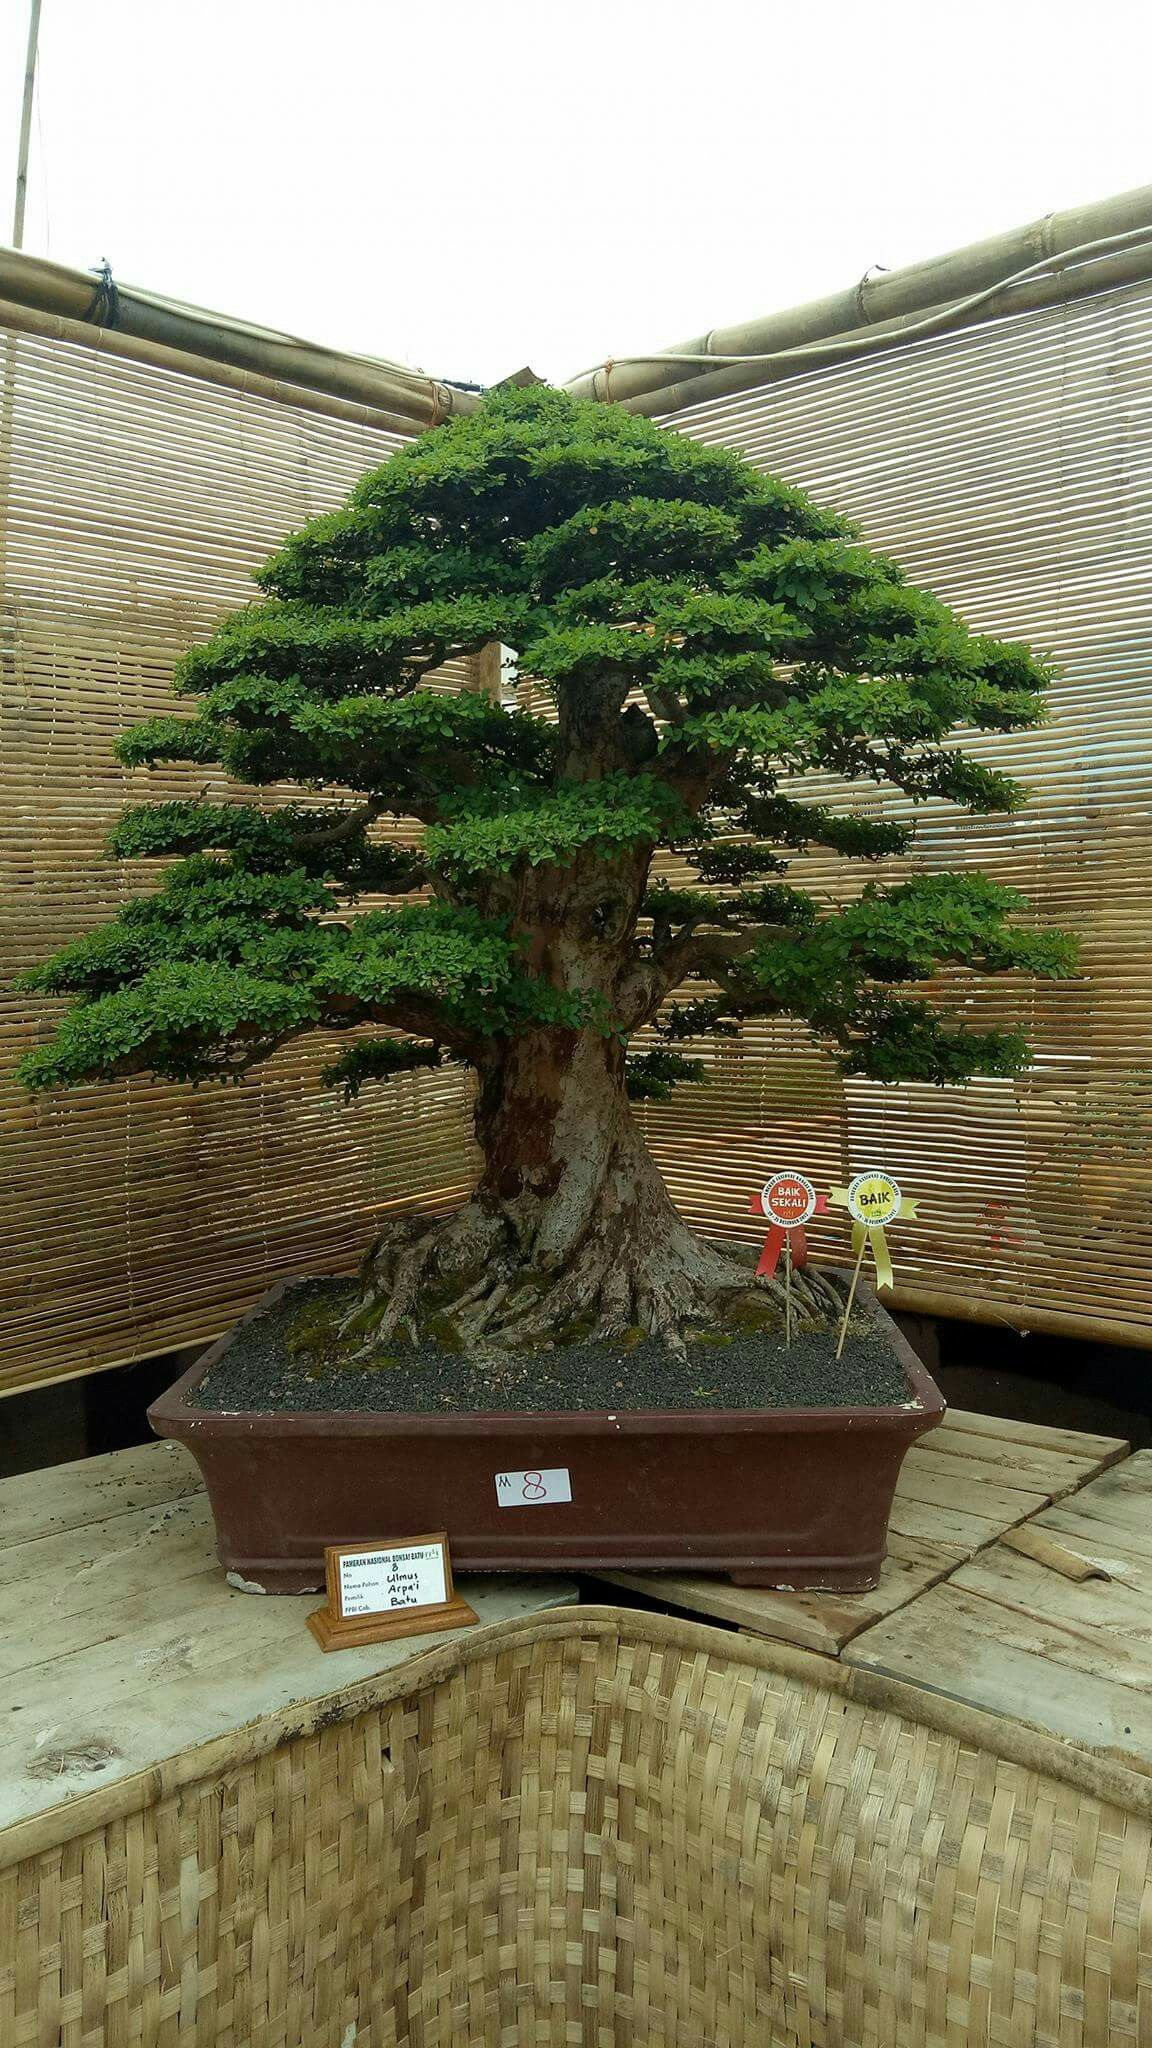 Pin by RAFAEL Leal on Bonsai | Pinterest | Bonsai, Gardens and ...